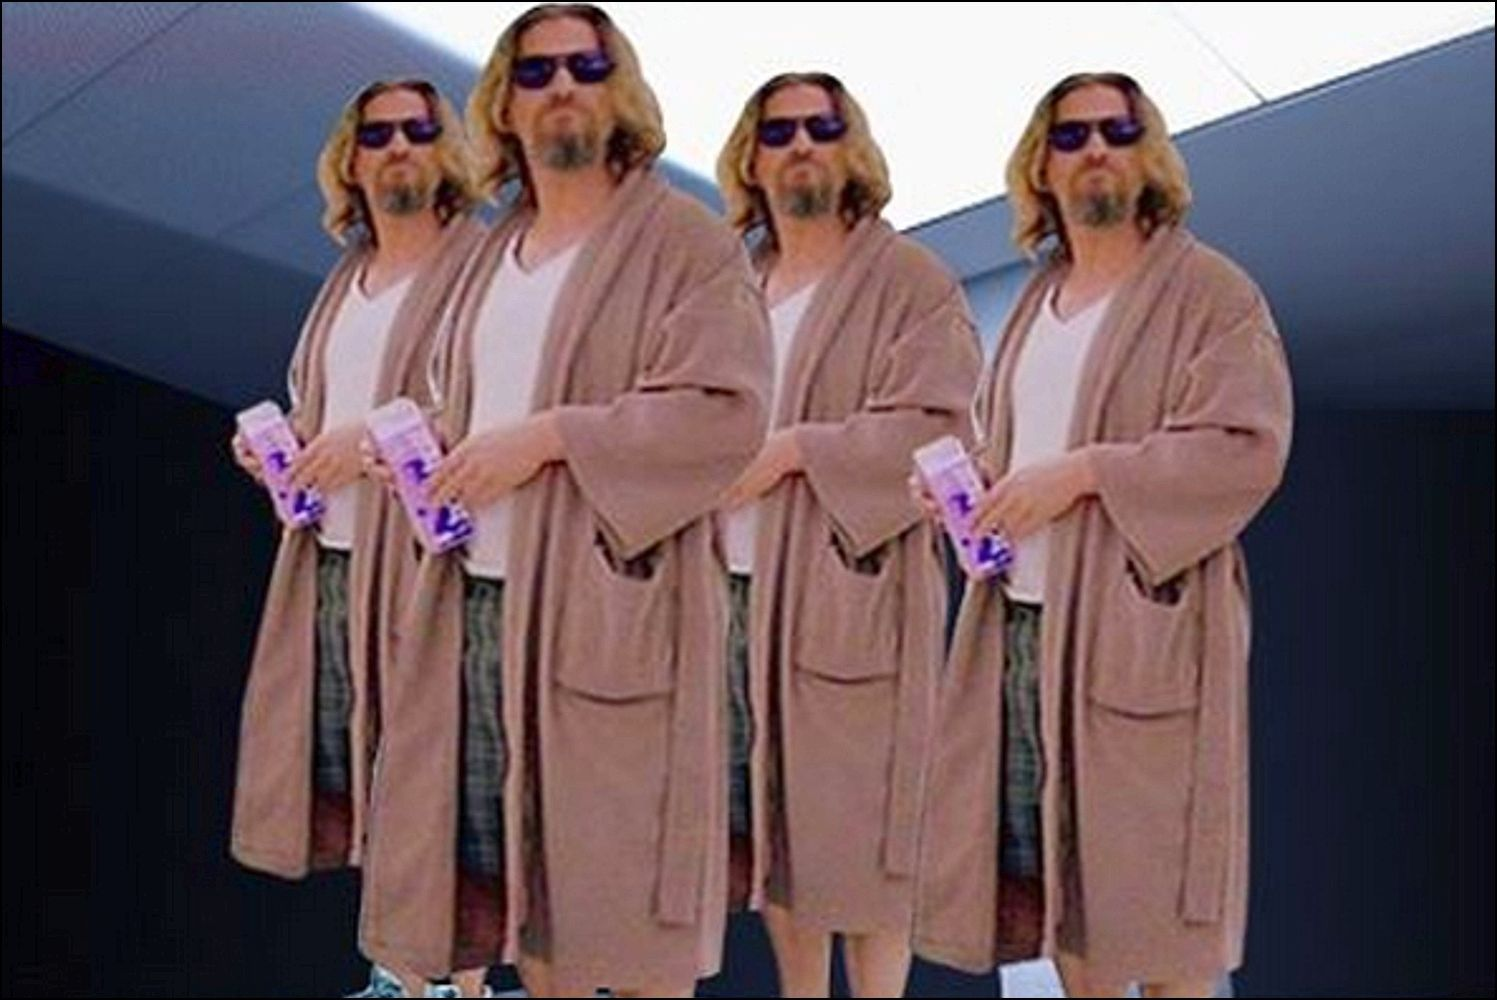 Enchanting Big Lebowski Dressing Gown Pattern - Wedding and flowers ...